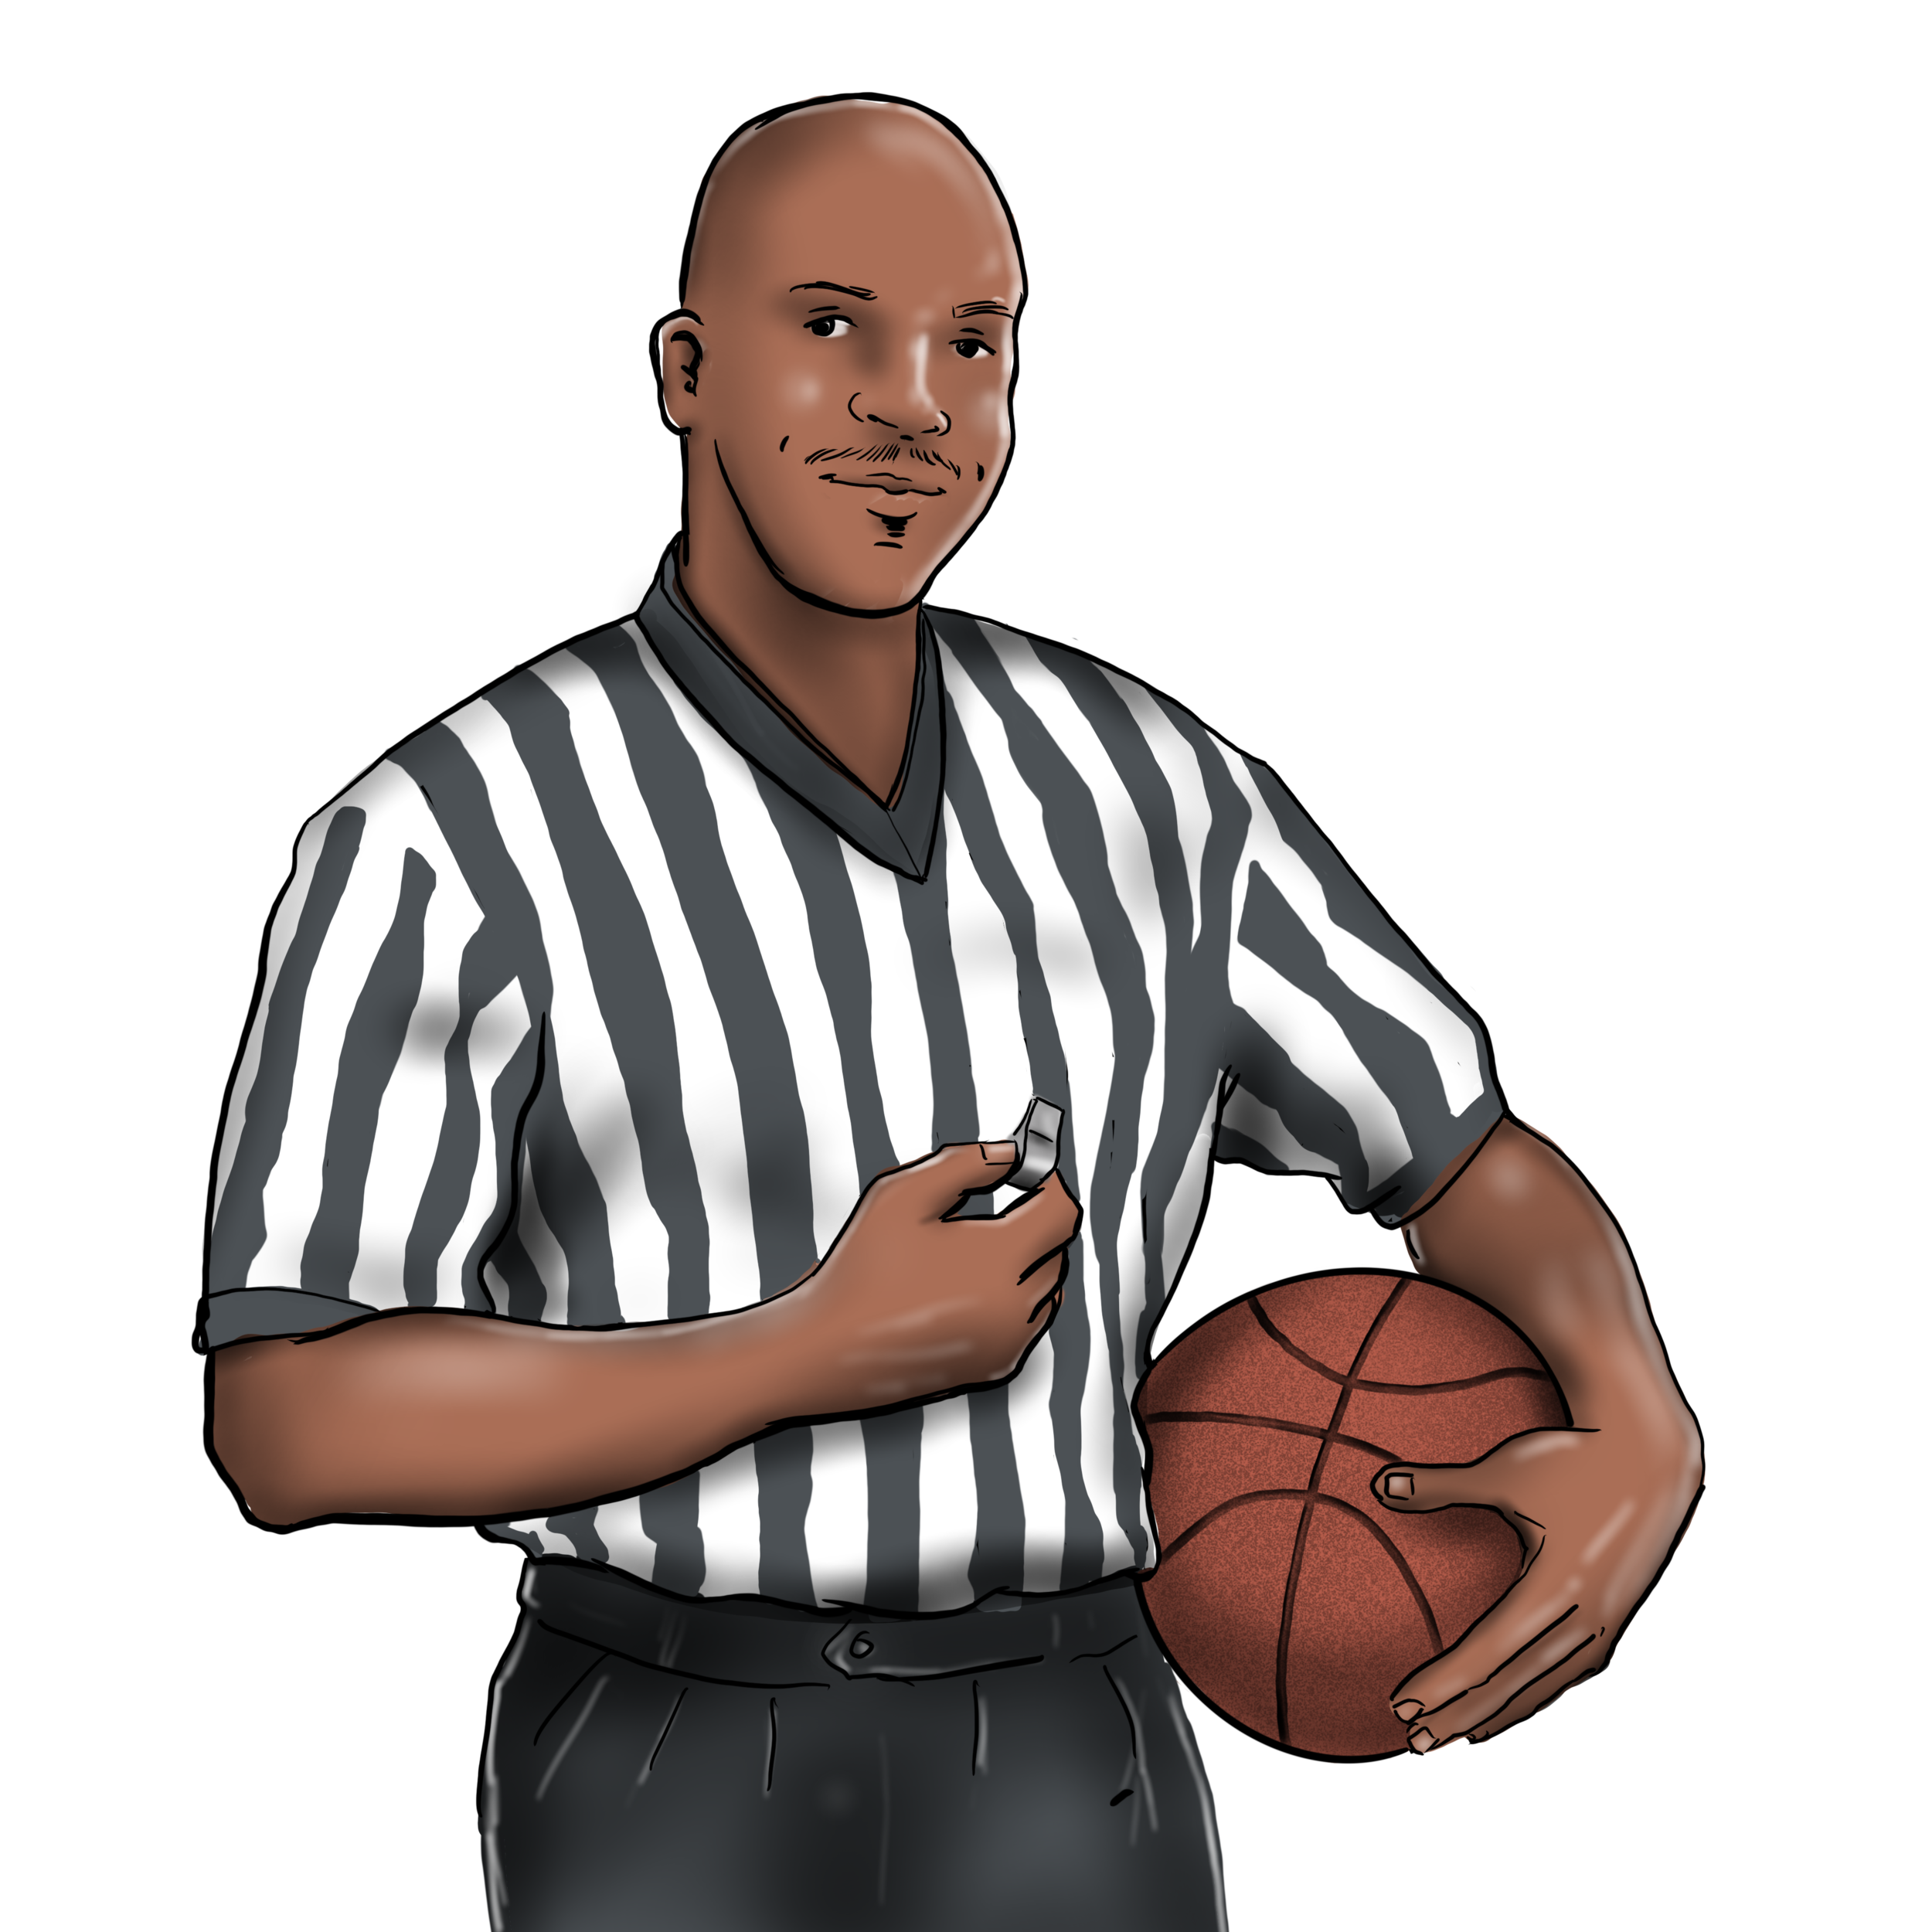 1cpm_080_referee.png